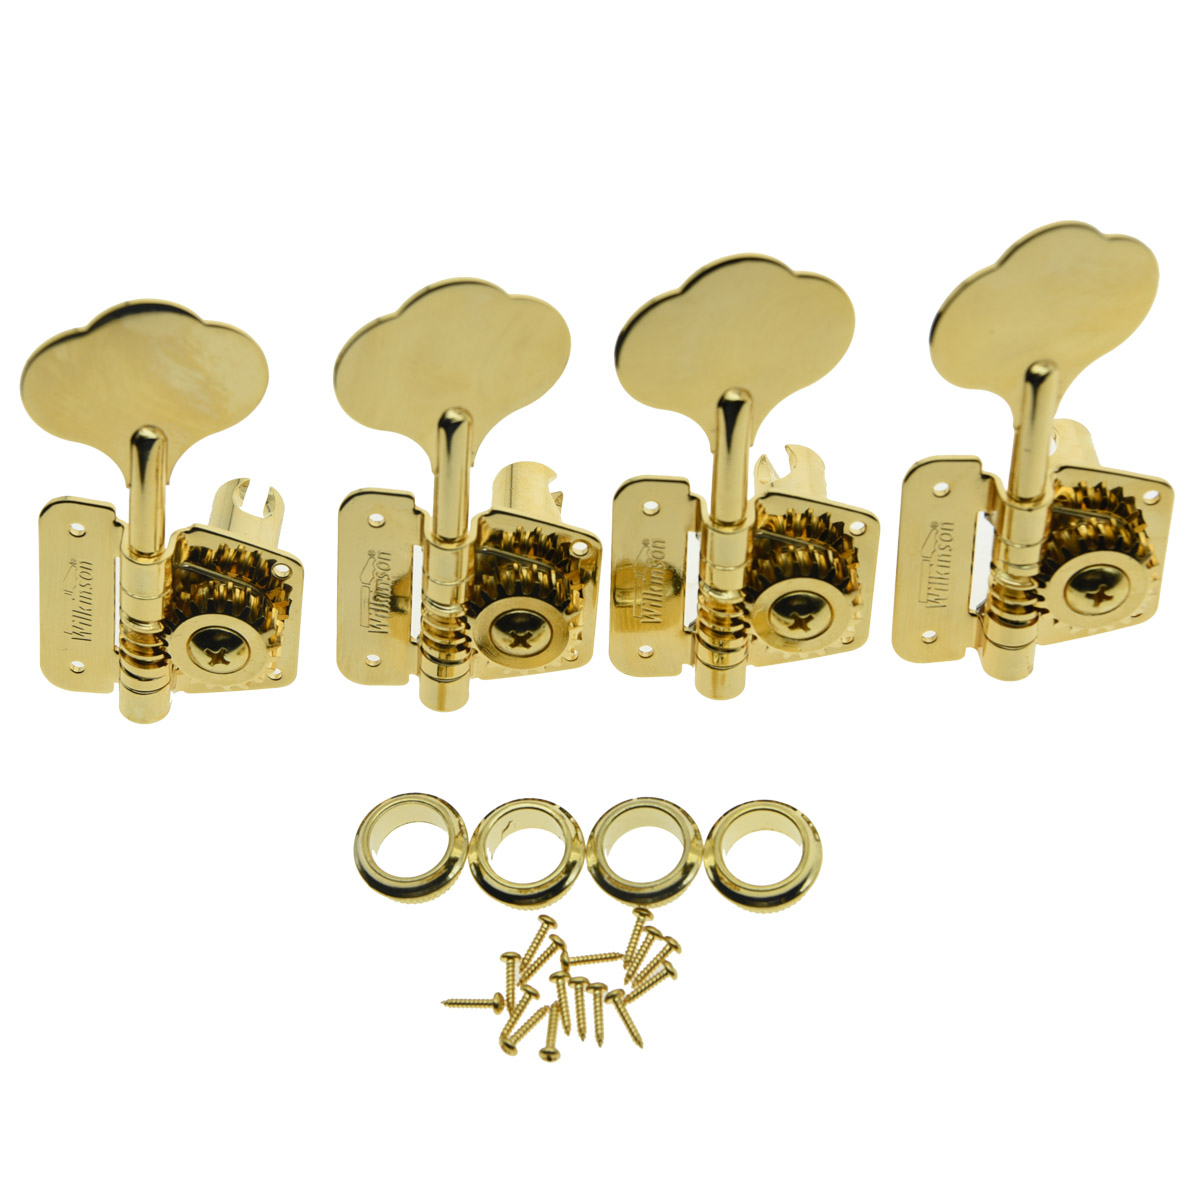 цена на Dopro Wilkinson Gold Bass Tuners Tuning Keys for 70's Vintage J Bass Precision Bass